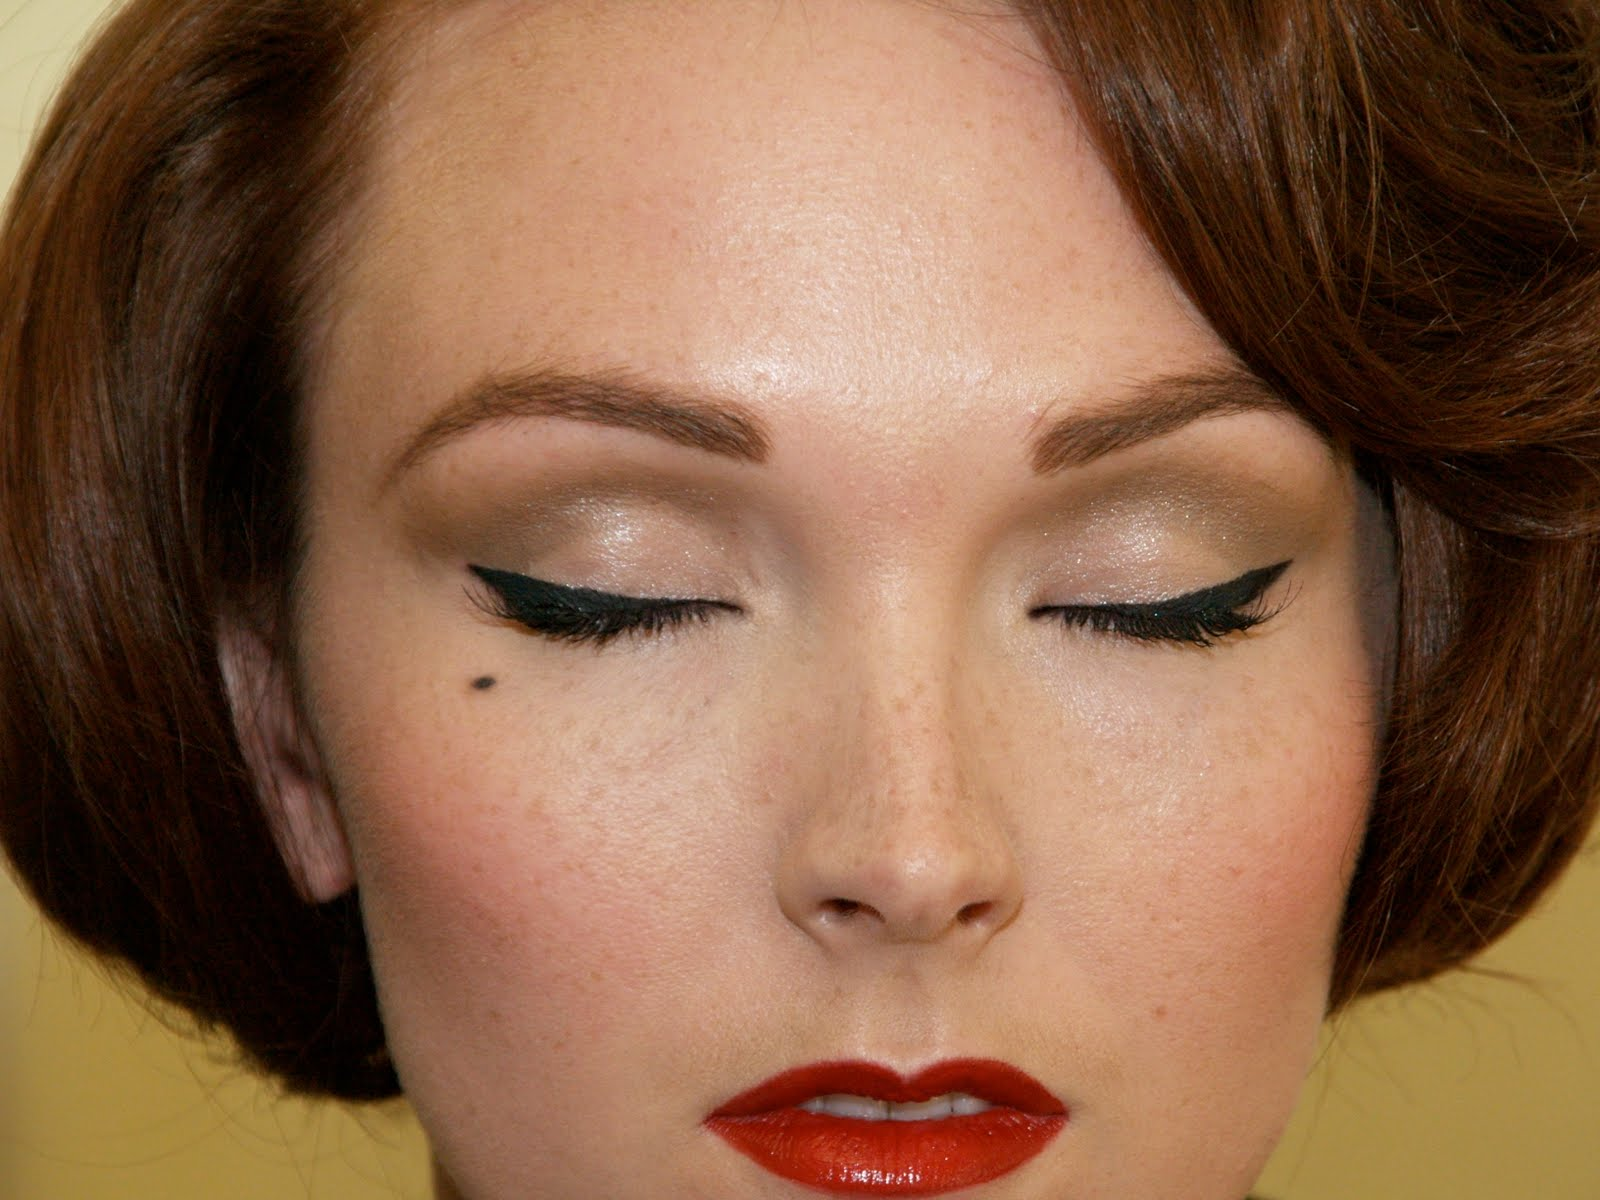 Vintage Beauté: Makeup Inspired by the 1950s